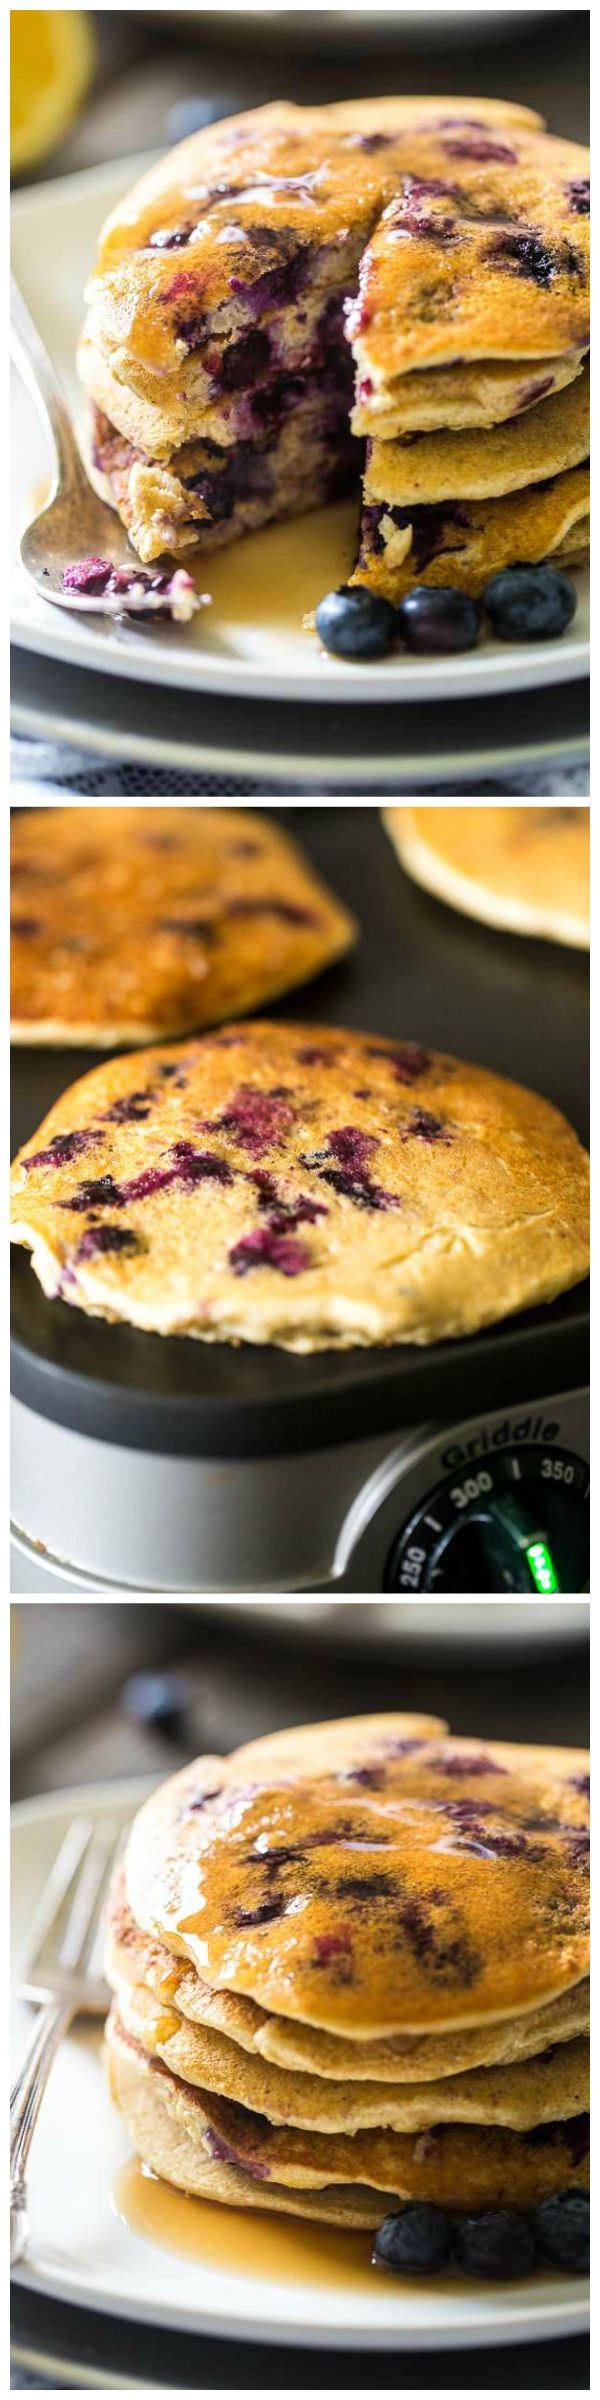 Lemon Blueberry Quinoa Pancakes - Light, fluffy, gluten free and made with Greek Yogurt so they're protein packed! Perfect for Mother's Day Brunch!